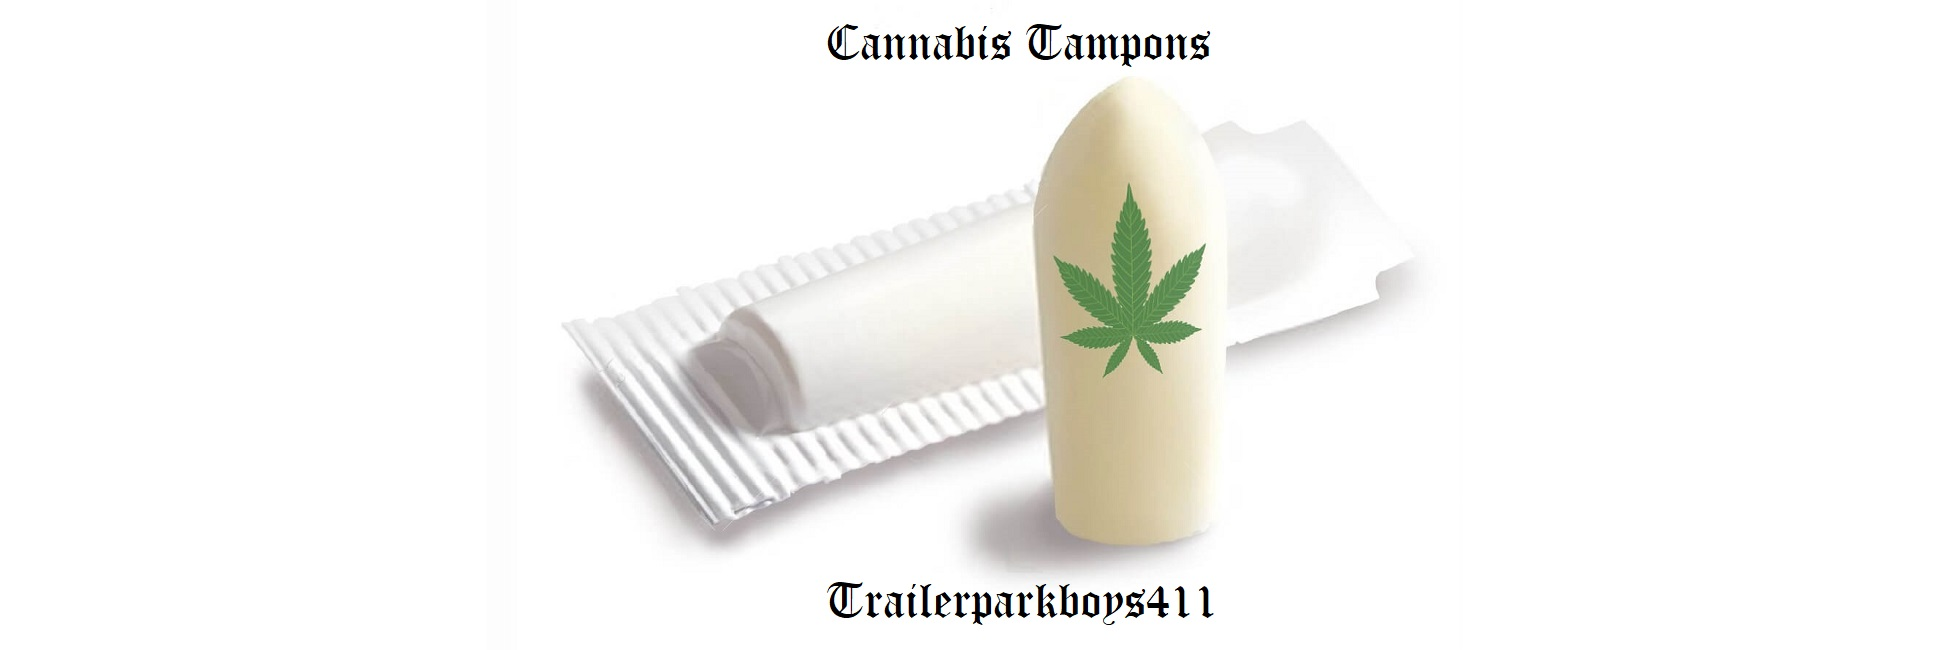 Cannabis Tampons